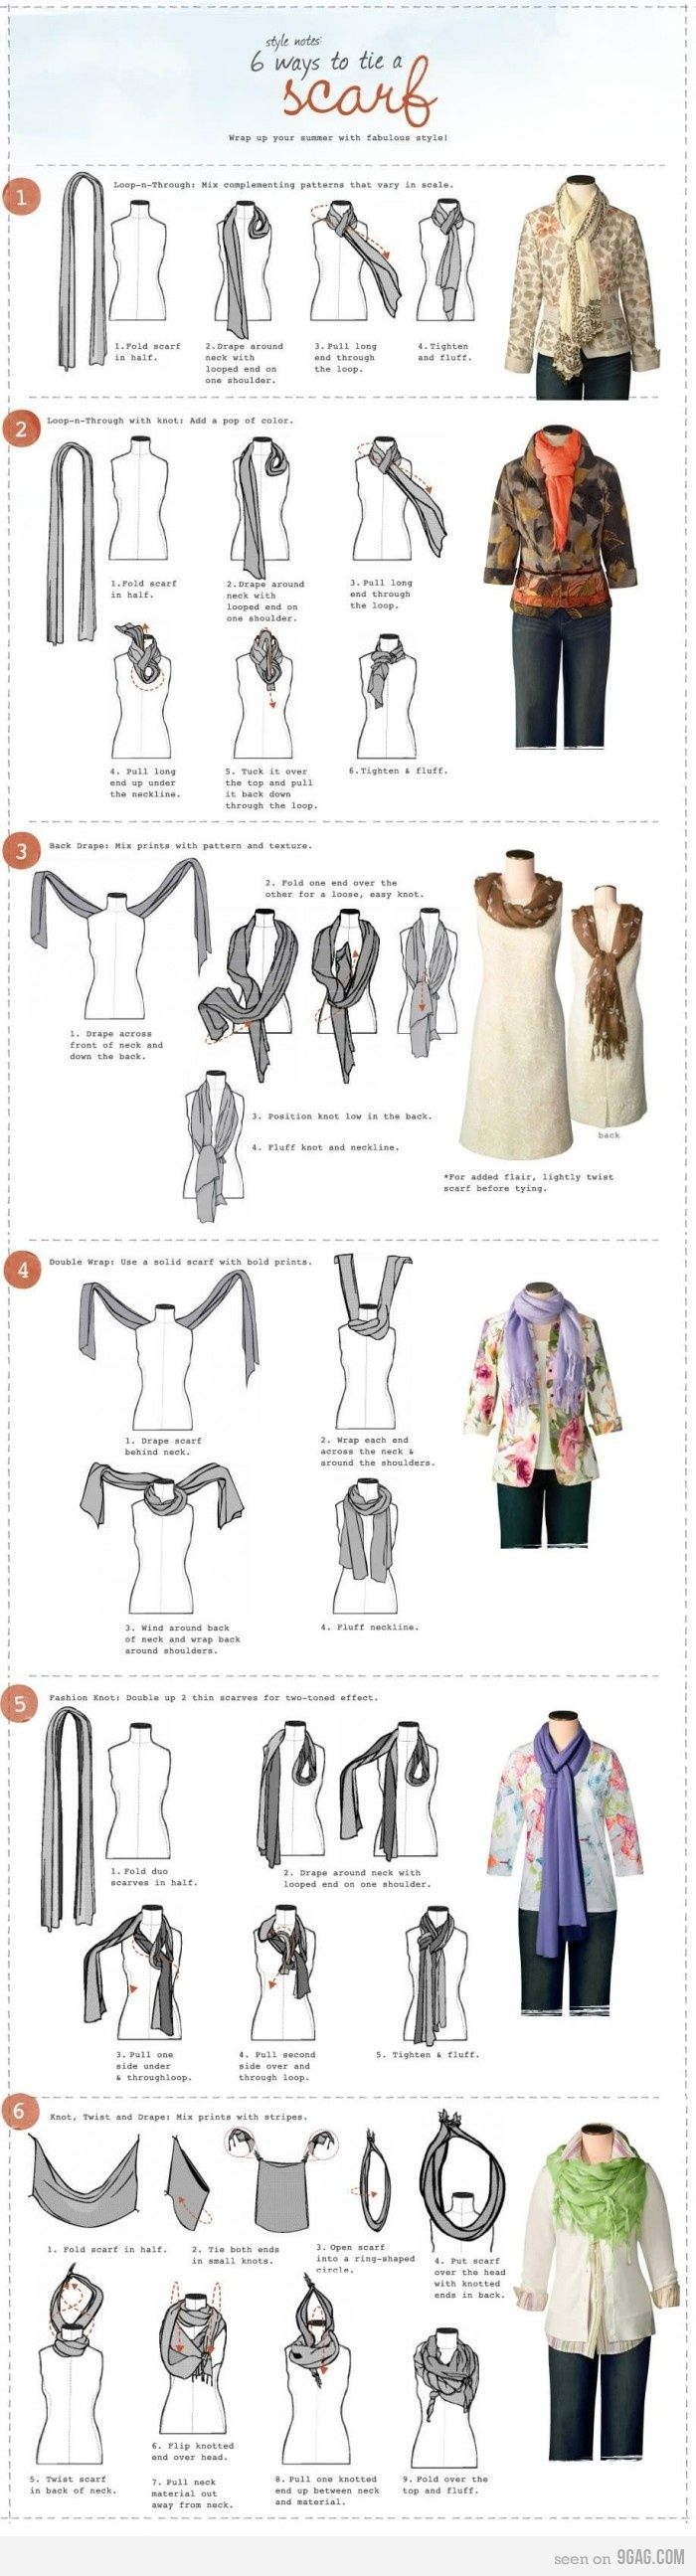 I love scarfs, and now I know how to tie them!